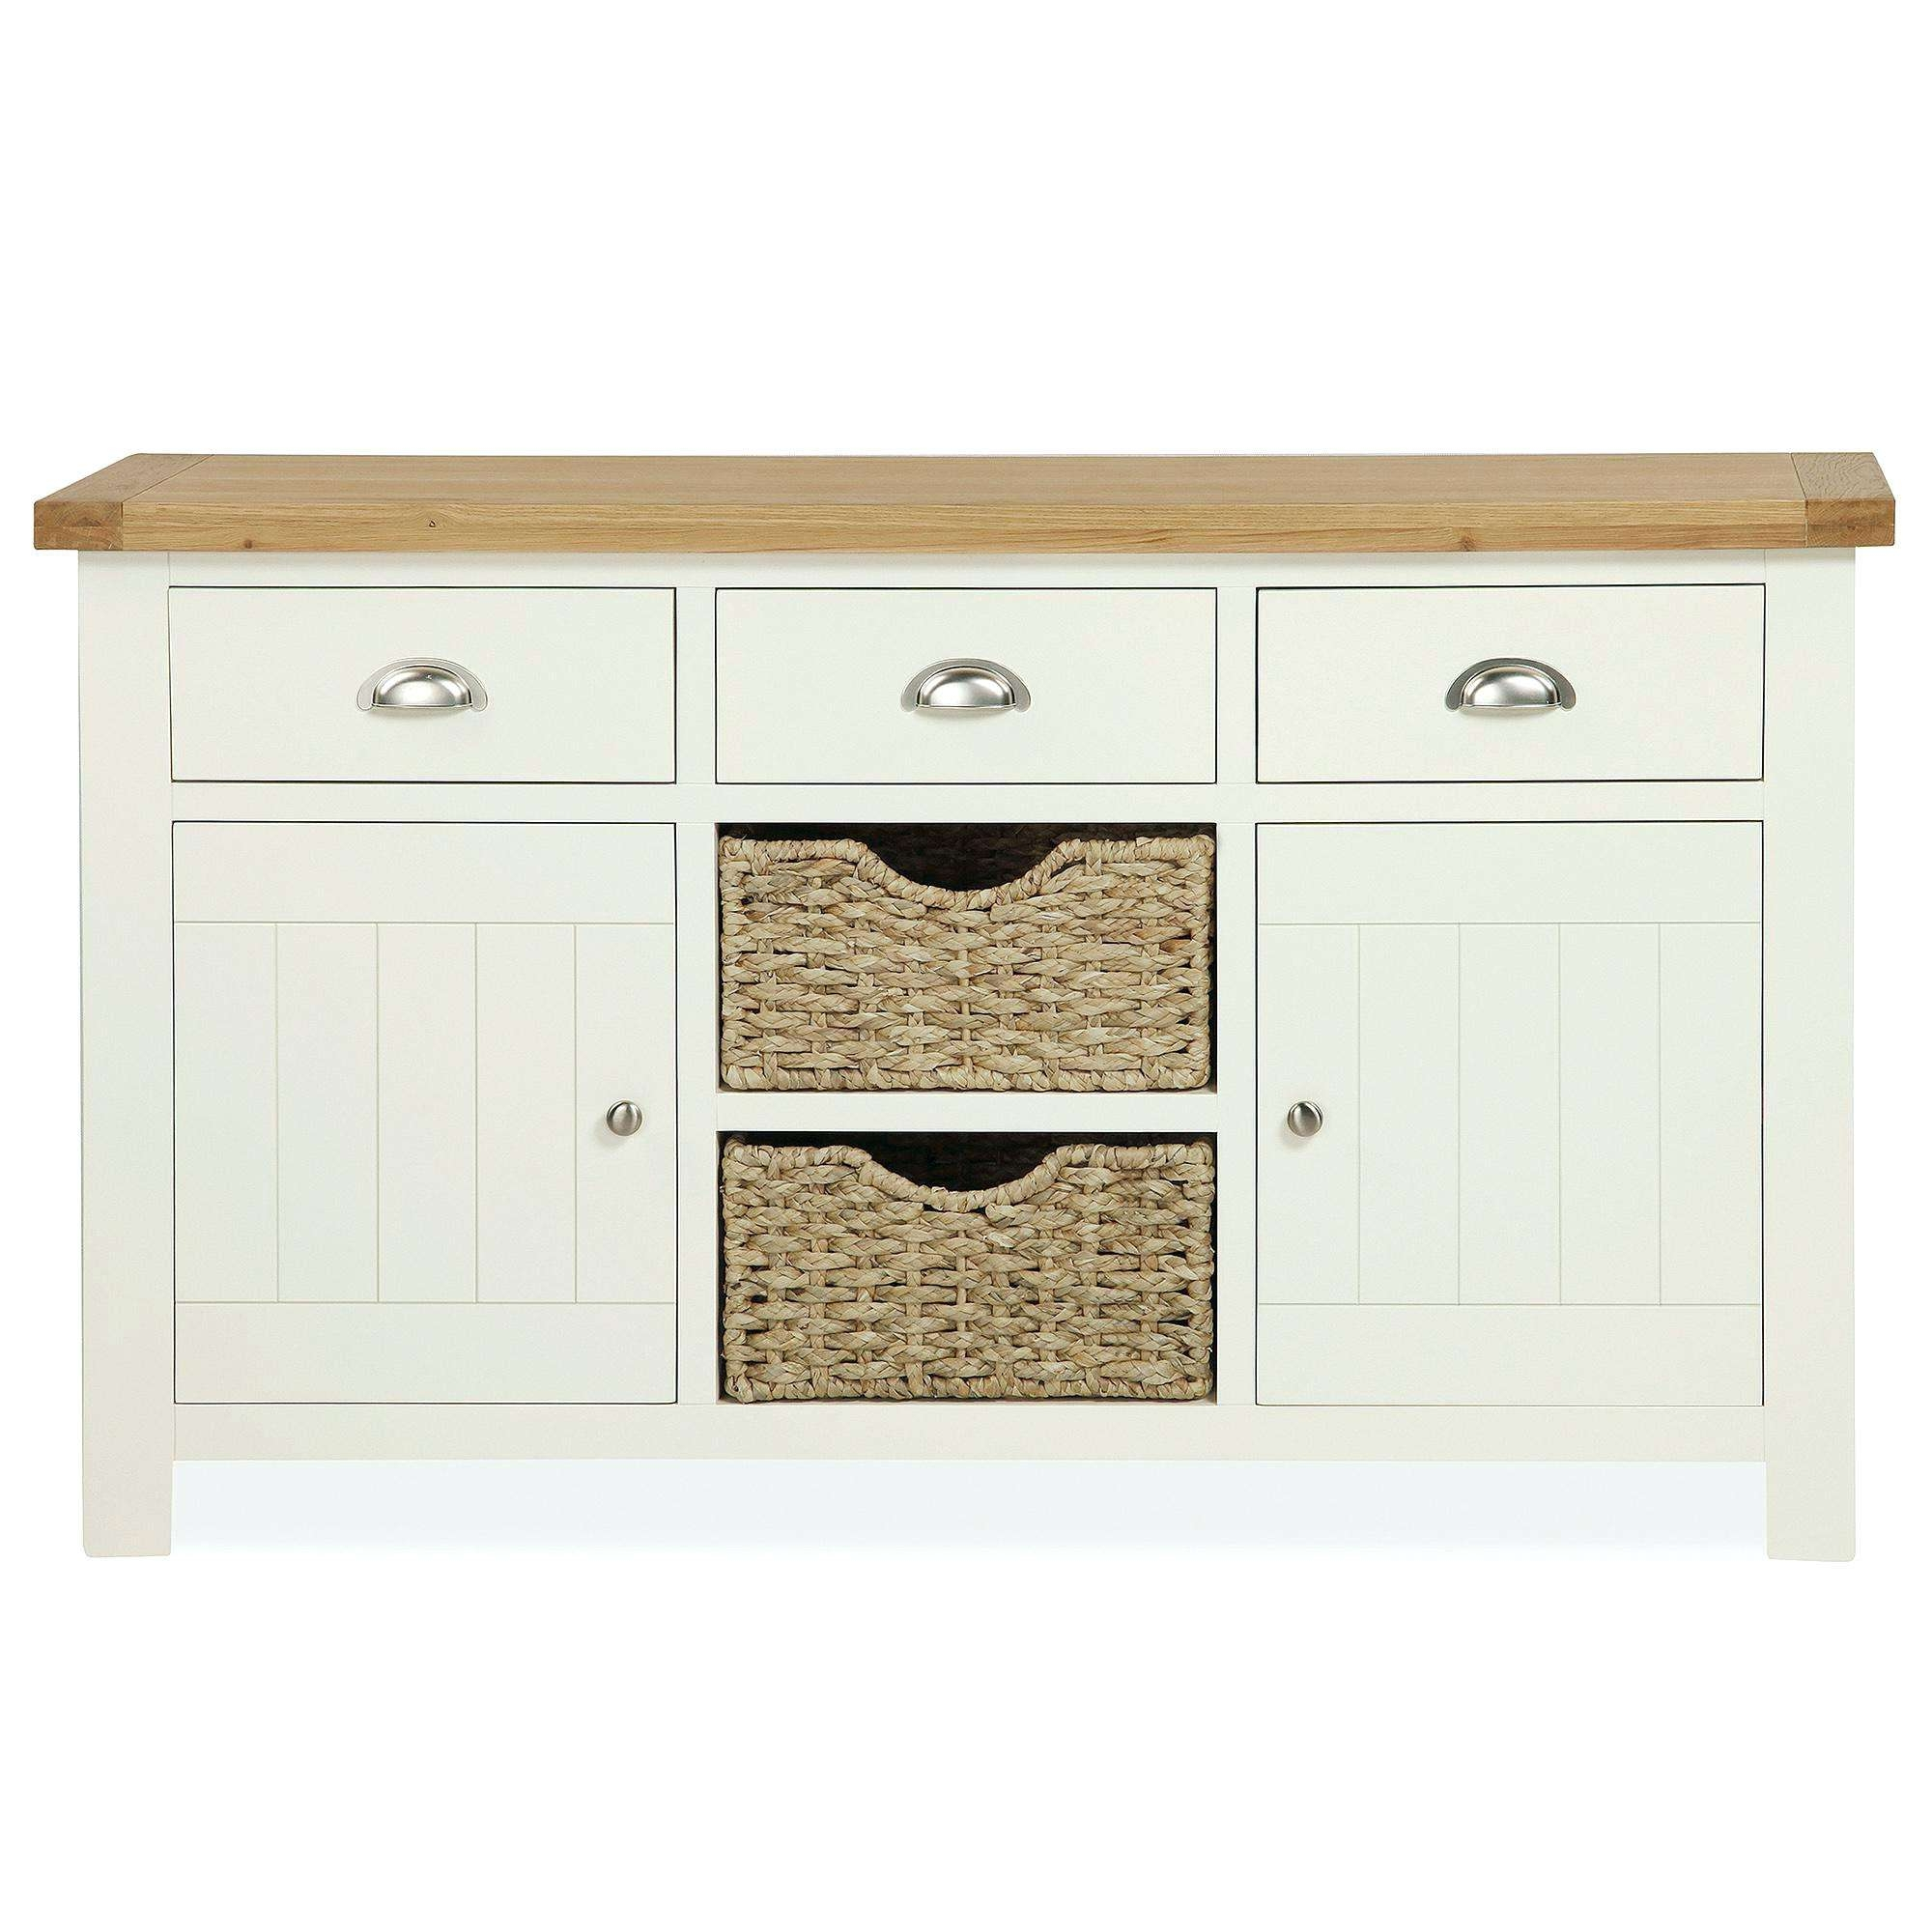 Cream Sideboard Cream Solid Oak Sideboard Large Cream Sideboard Pertaining To High Gloss Cream Sideboards (View 7 of 20)